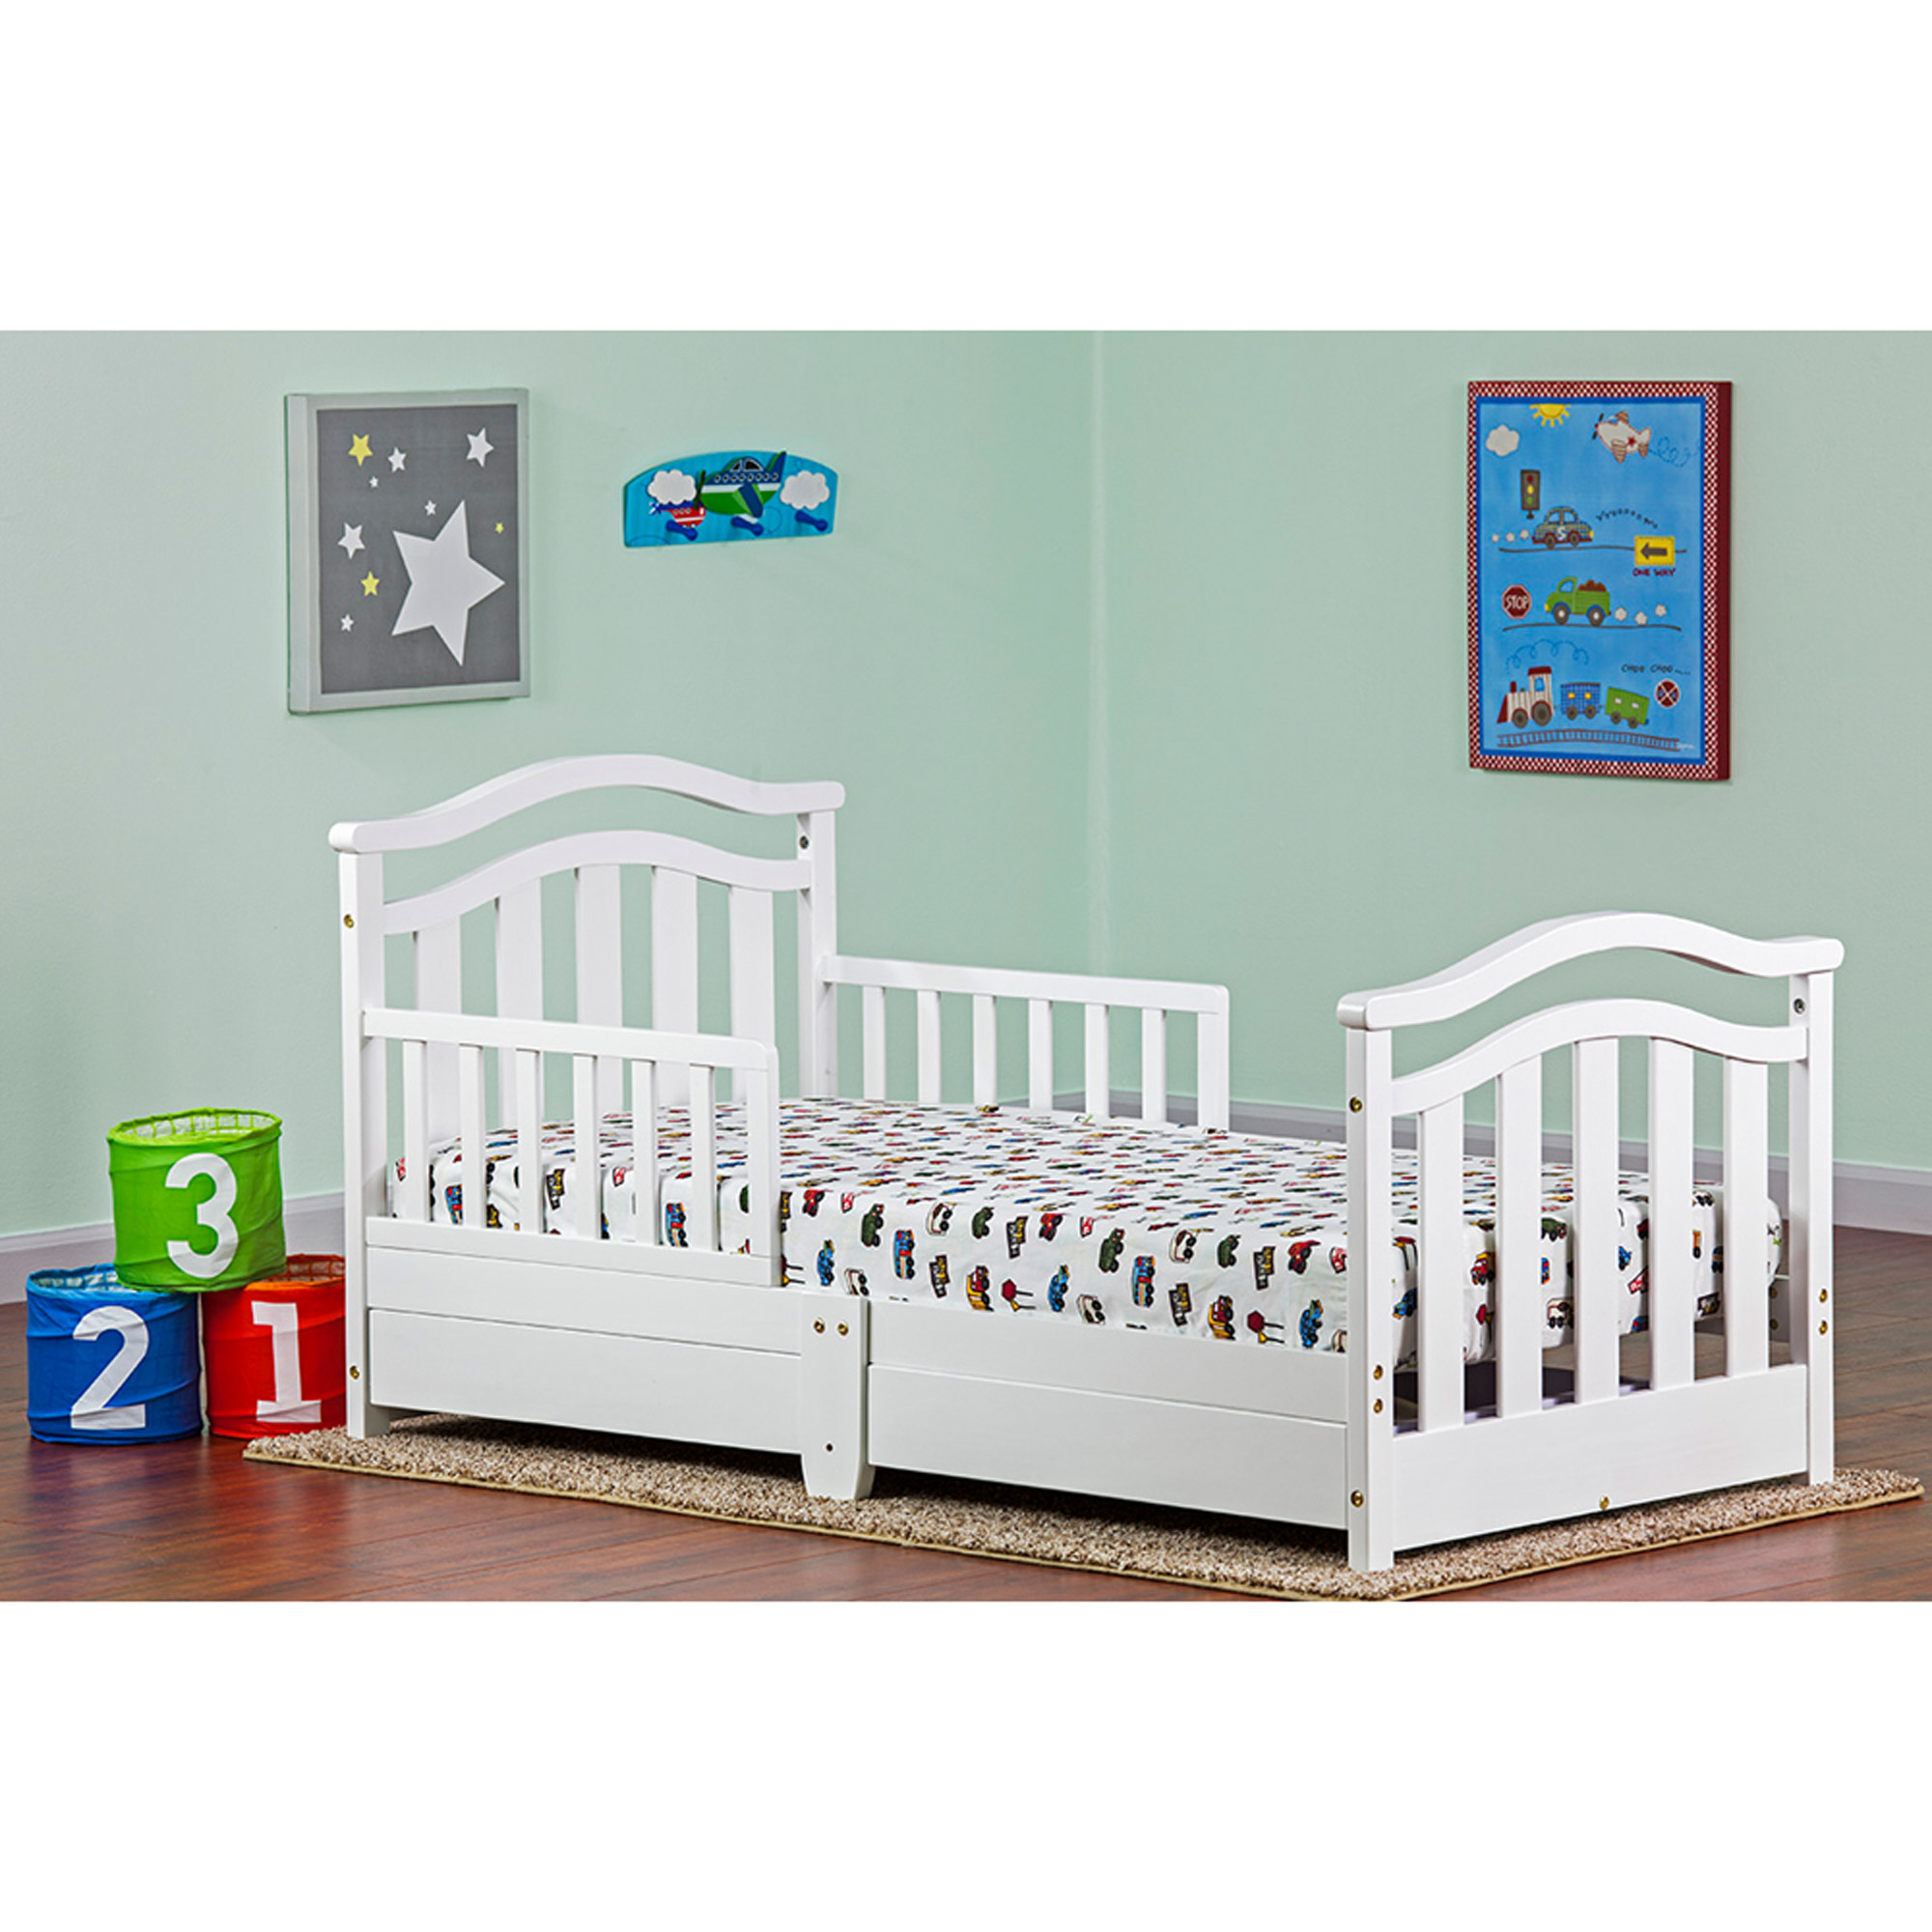 Dream On Me, Toddler Day Bed with Storage Drawer, White